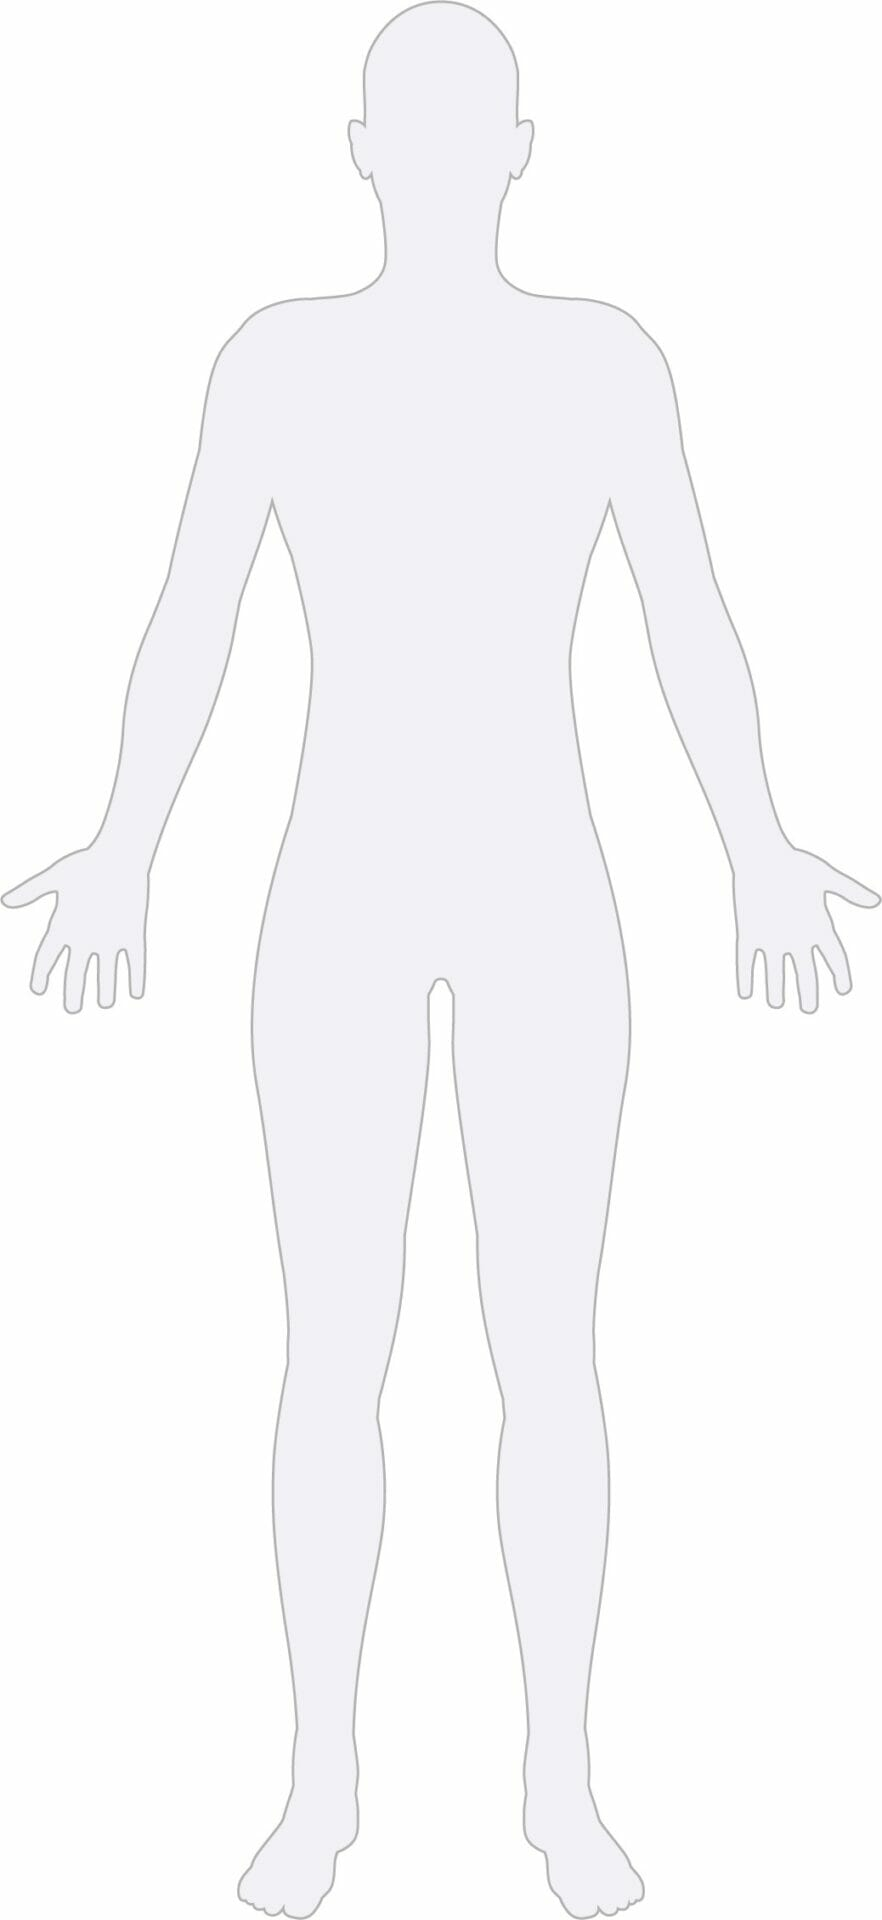 Orthopedic Body Chart